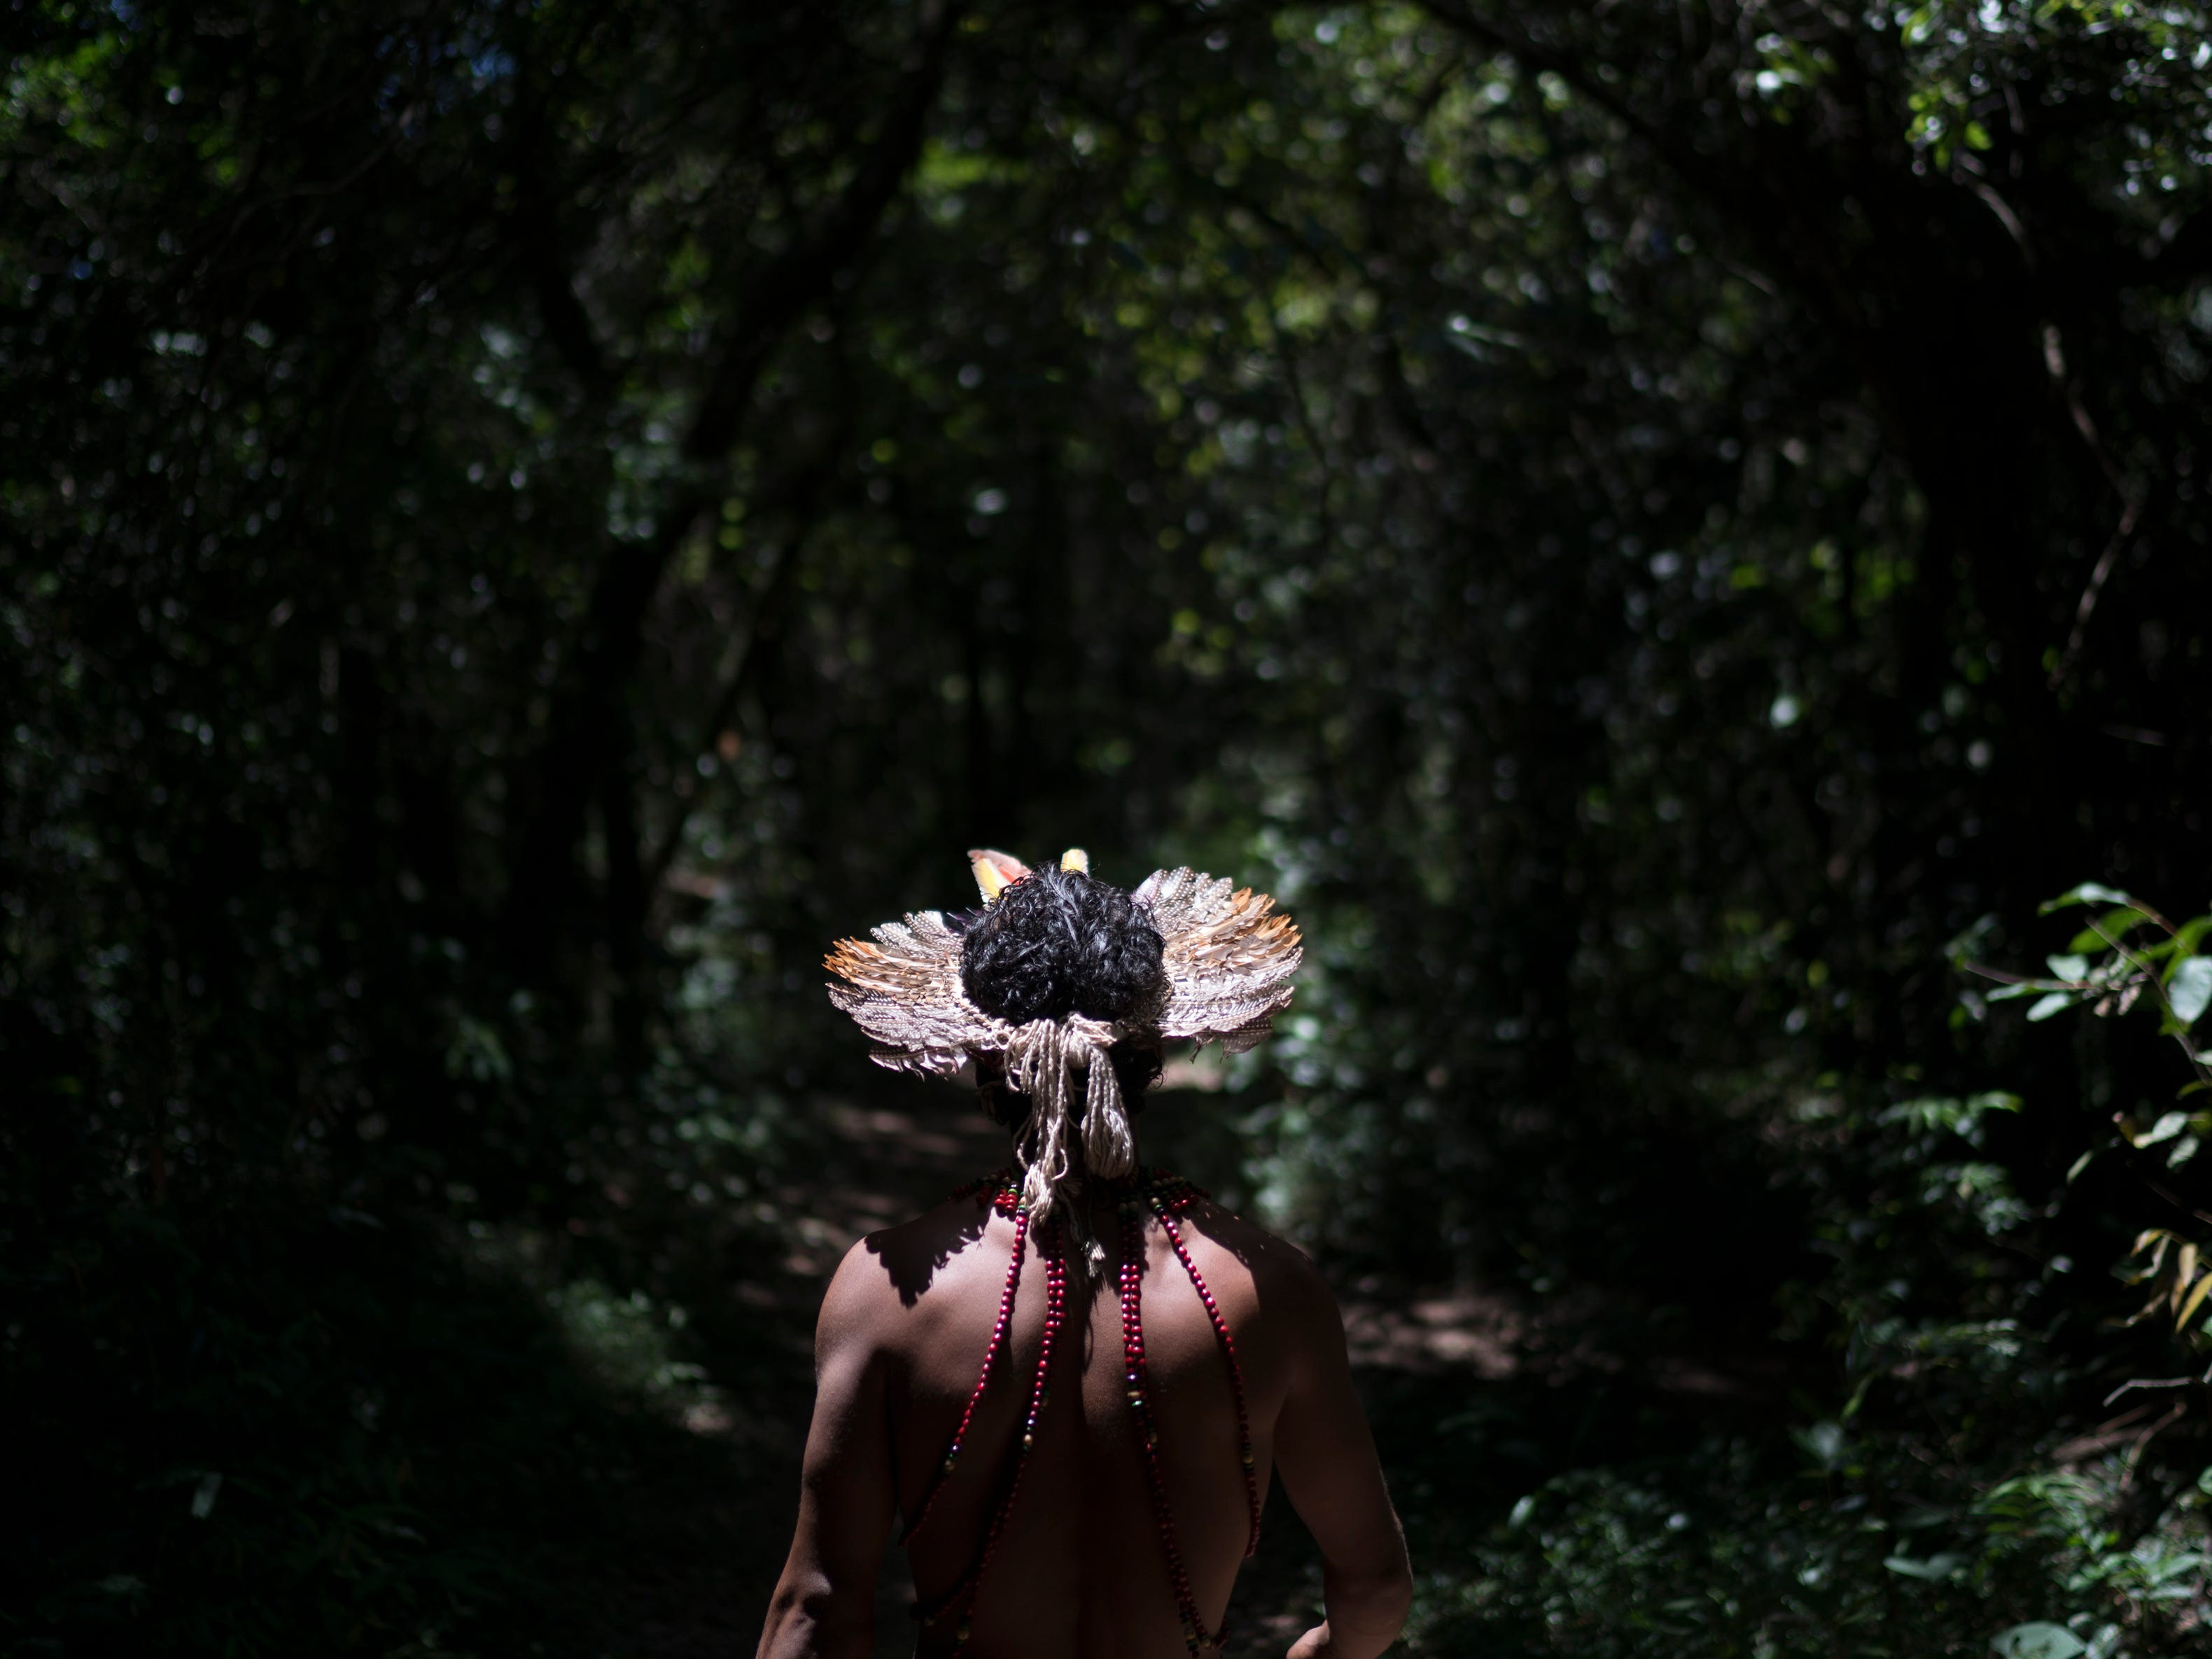 Hayo, chief of the Pataxo Ha-ha-hae indigenous community, walks toward the Paraopeba River days after the collapse of a mining company dam, near his village in Brumadinho, Brazil, Tuesday, Jan. 29, 2019. Mining giant Vale representatives insisted that the mud is composed mostly of silica, or sand, and is non-toxic, but environmental groups contend the iron ore mine waste contains high levels of iron oxide that could cause irreversible damage.